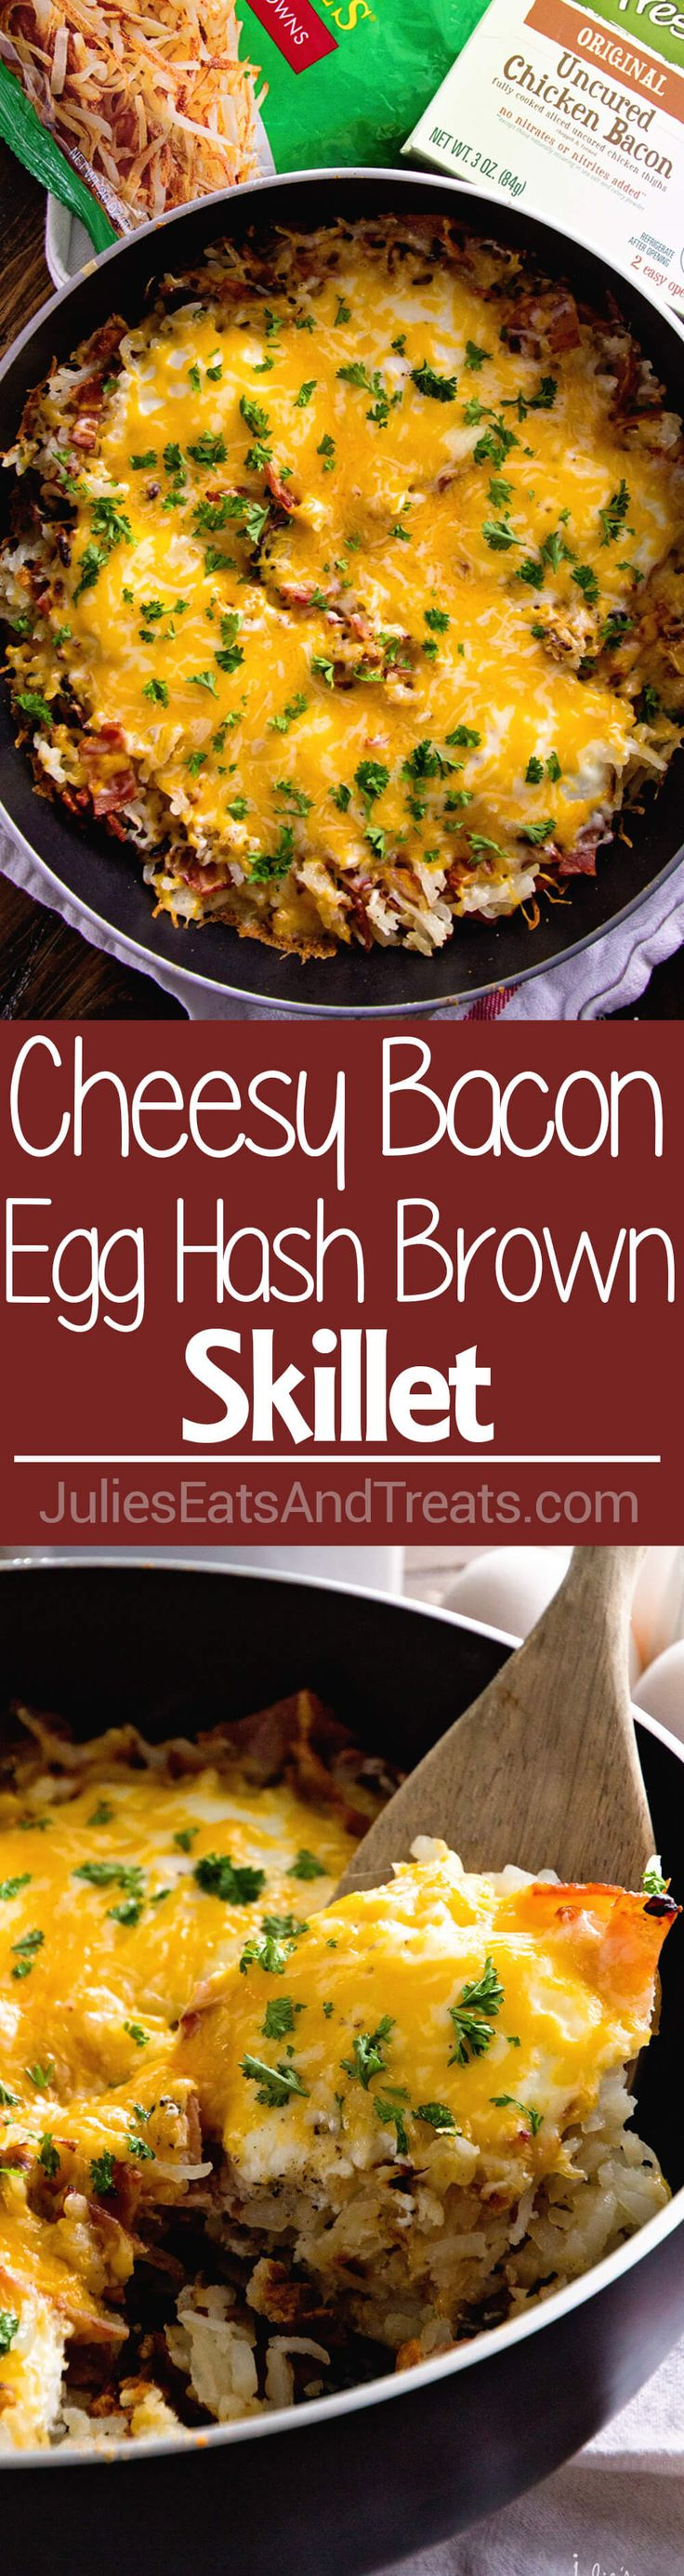 Cheesy Bacon Egg Hash Brown Skillet ~ Delicious, Easy Breakfast Skillet Loaded with Crispy Bacon, Hash Browns, Cheese and Eggs!  via @julieseats #SimplyHolidays #ad @SimplyPotatoes